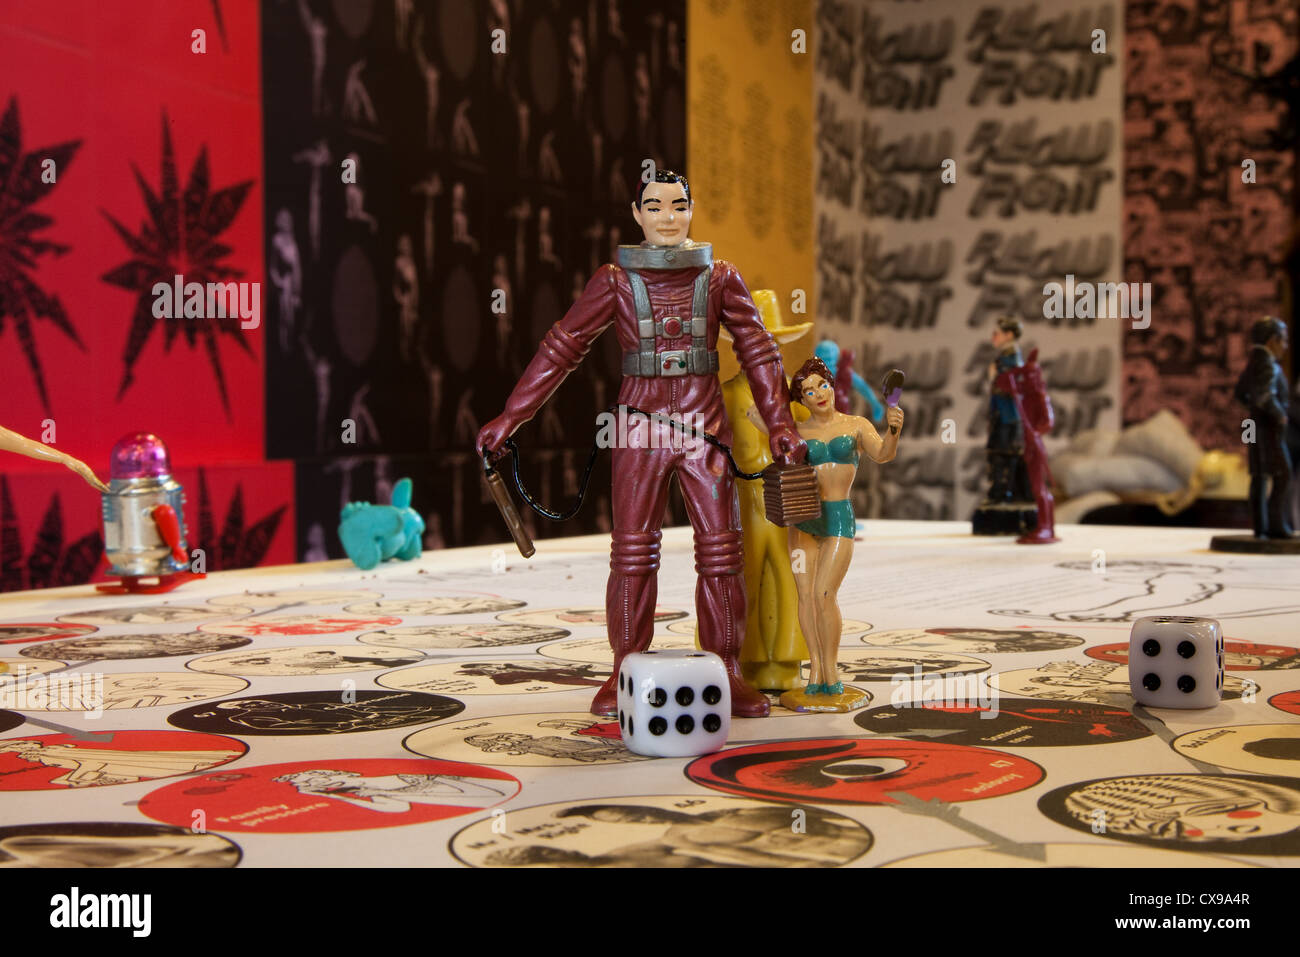 Pedro Reyes Melodrama and other Board Science Fiction Dice Games at the Liverpool UK Biennial of Contemporary Art - Stock Image